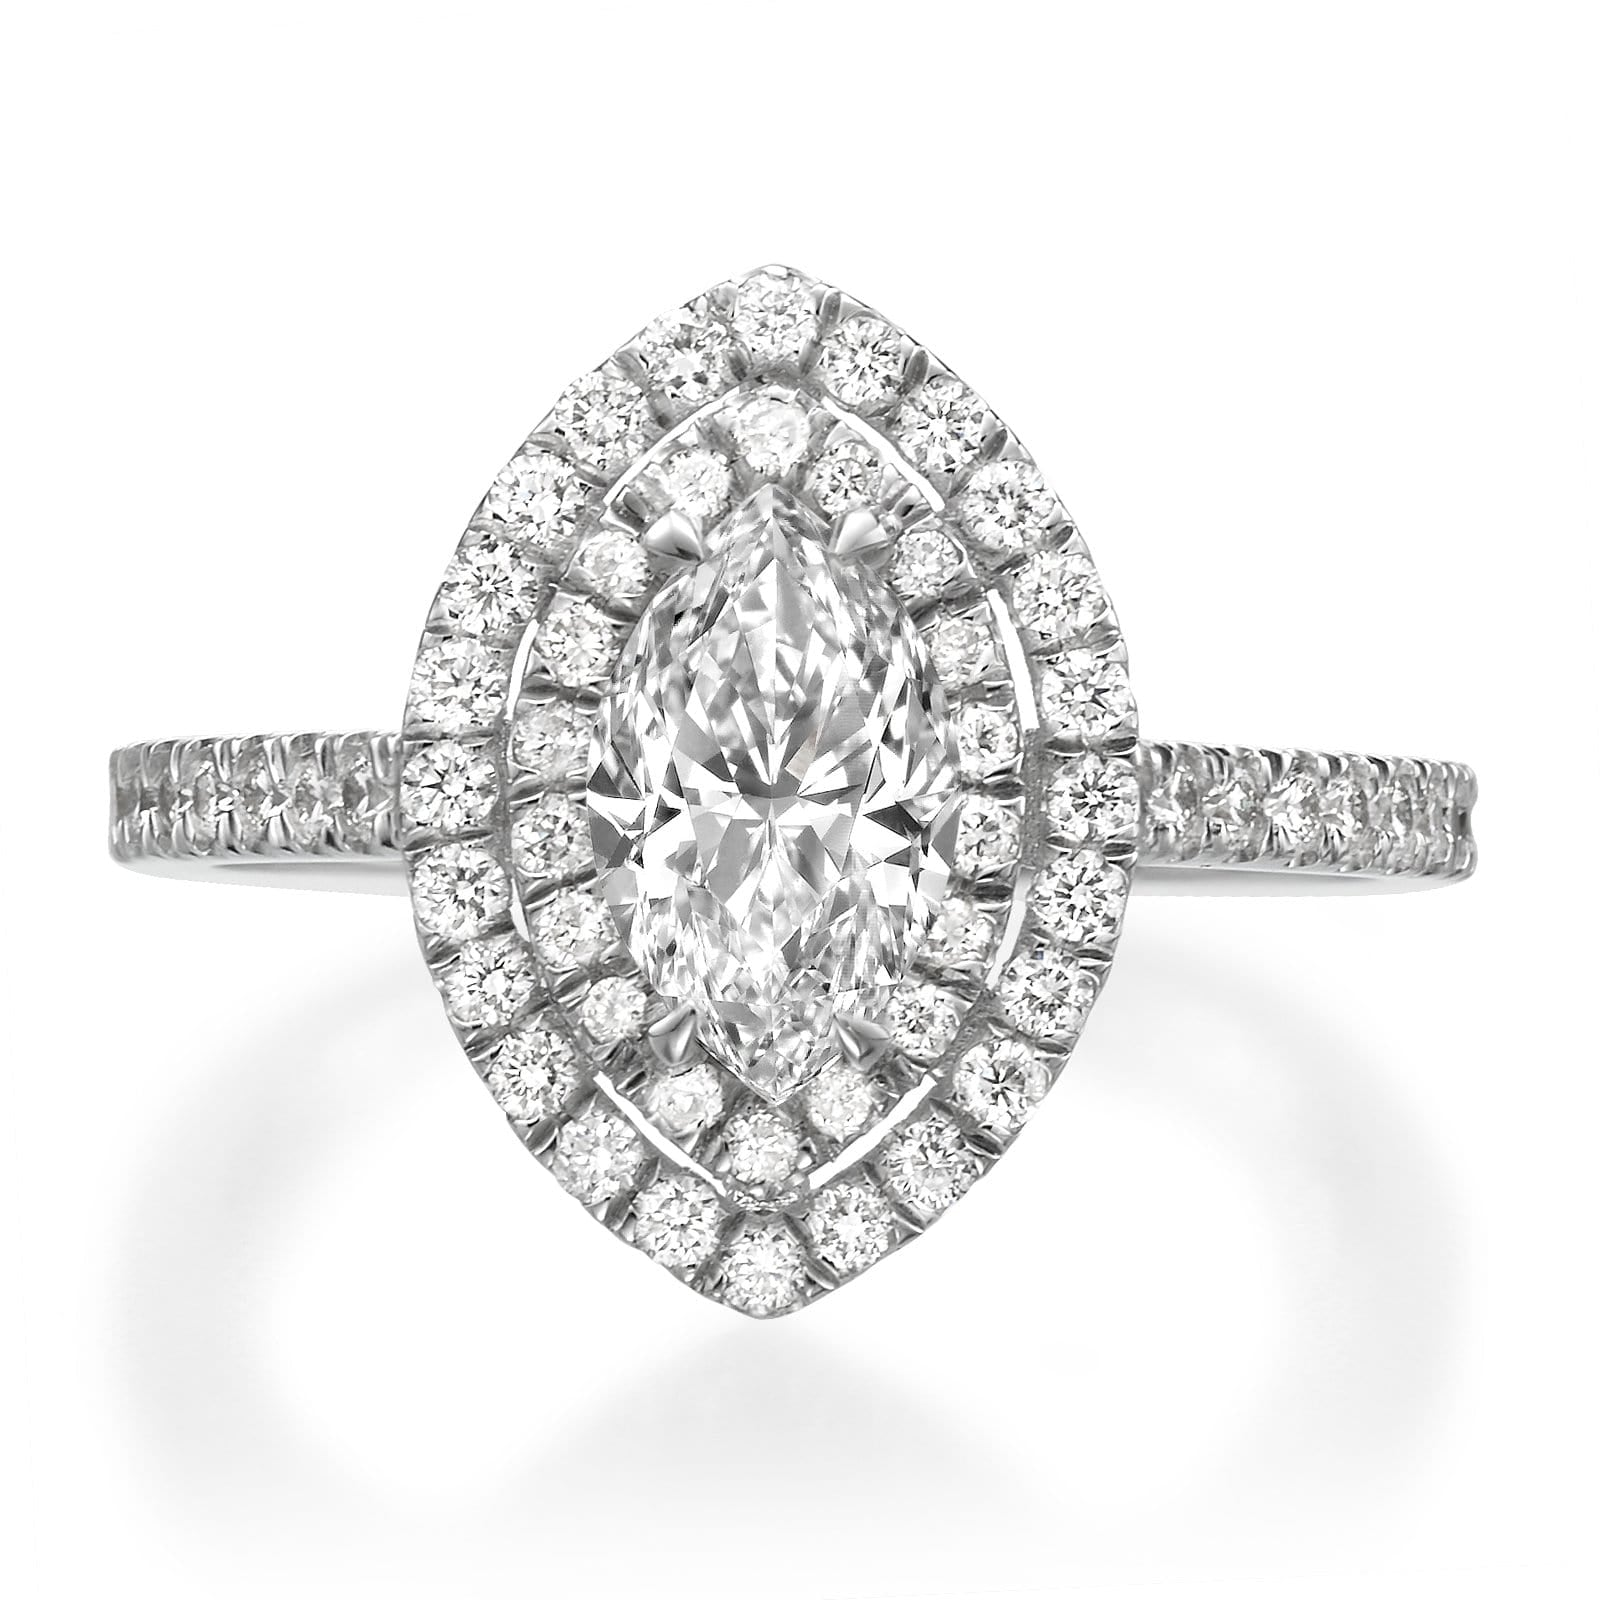 1.51 ct Marquise Cut Diamond Engagement Ring